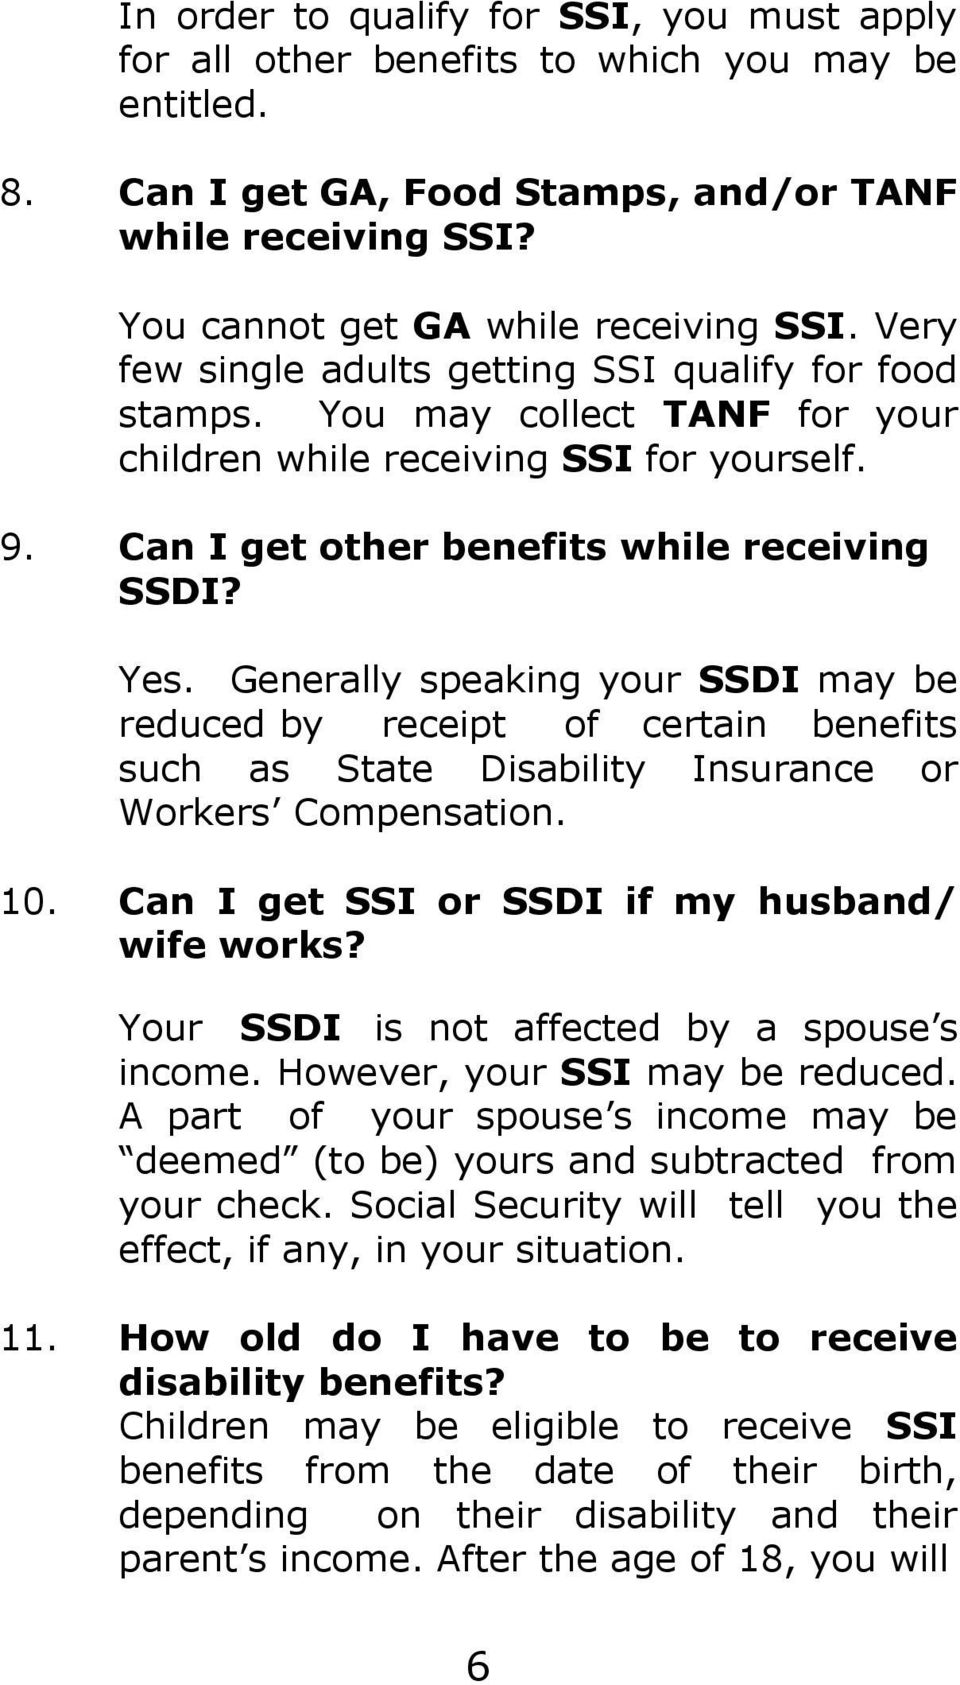 Generally speaking your SSDI may be reduced by receipt of certain benefits such as State Disability Insurance or Workers Compensation. 10. Can I get SSI or SSDI if my husband/ wife works?